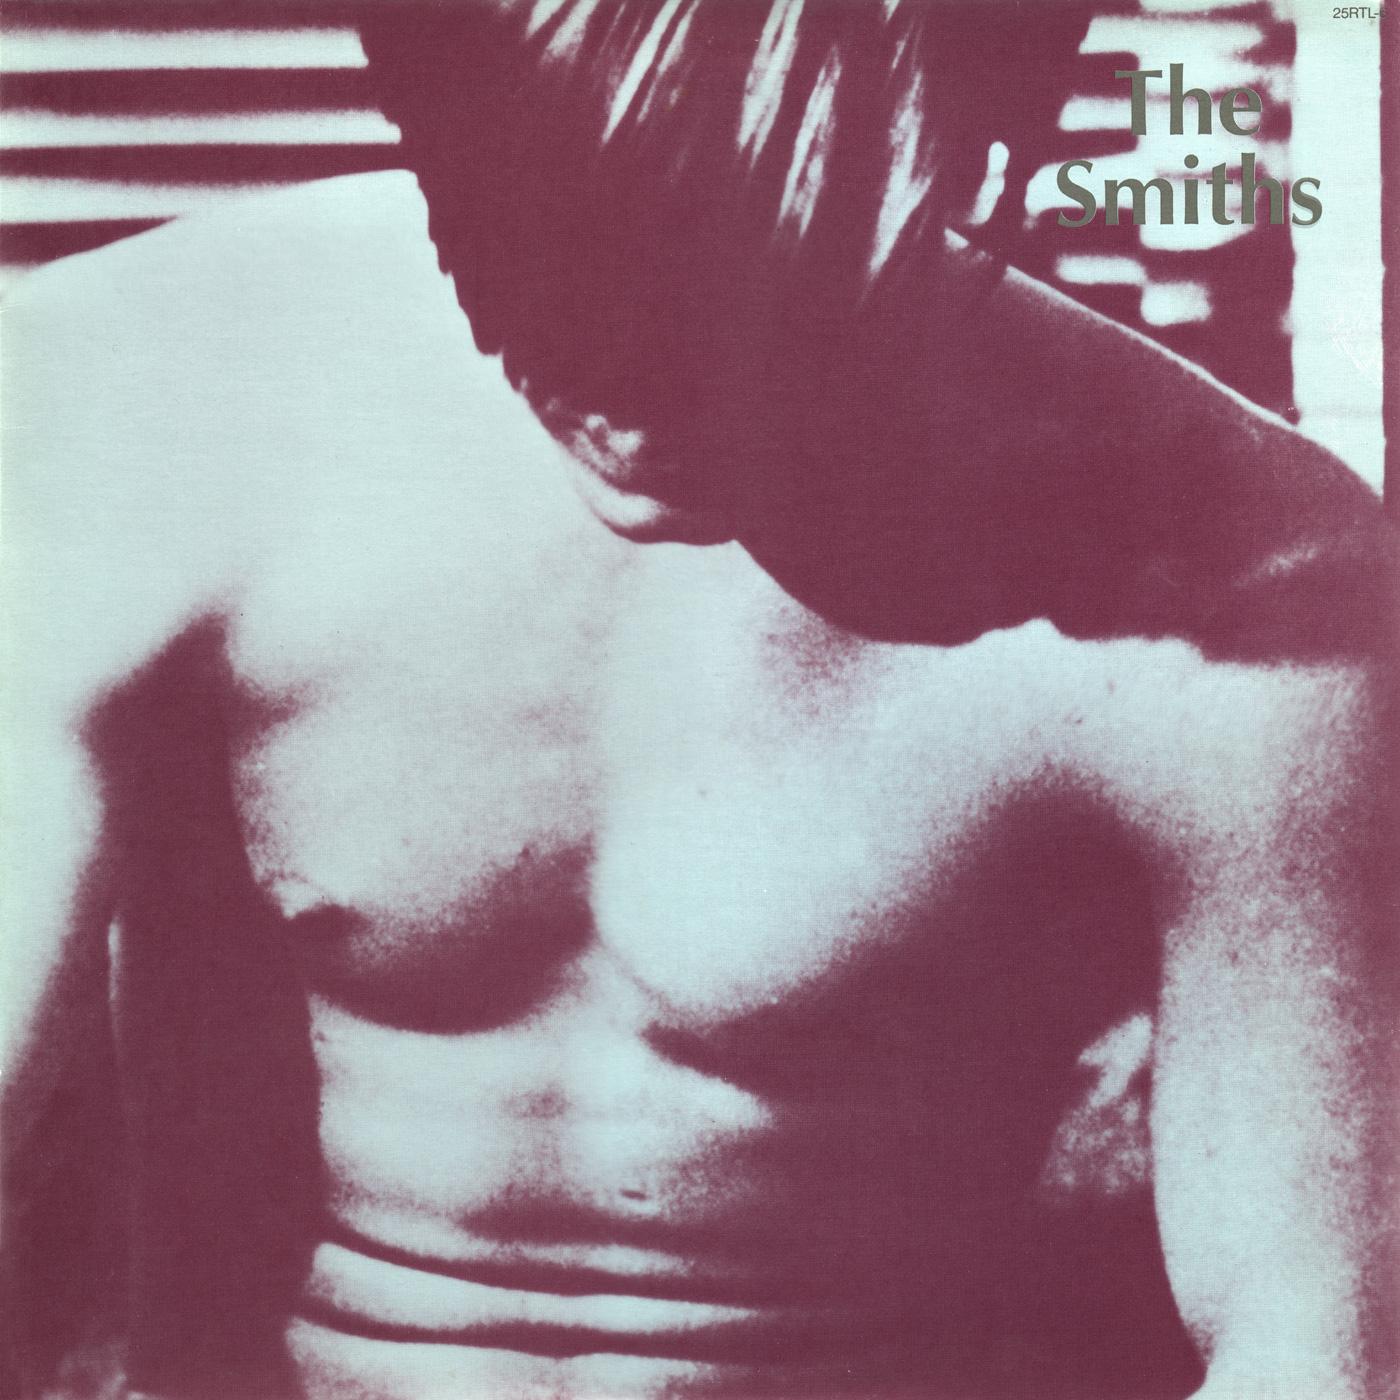 1984 - The Smiths